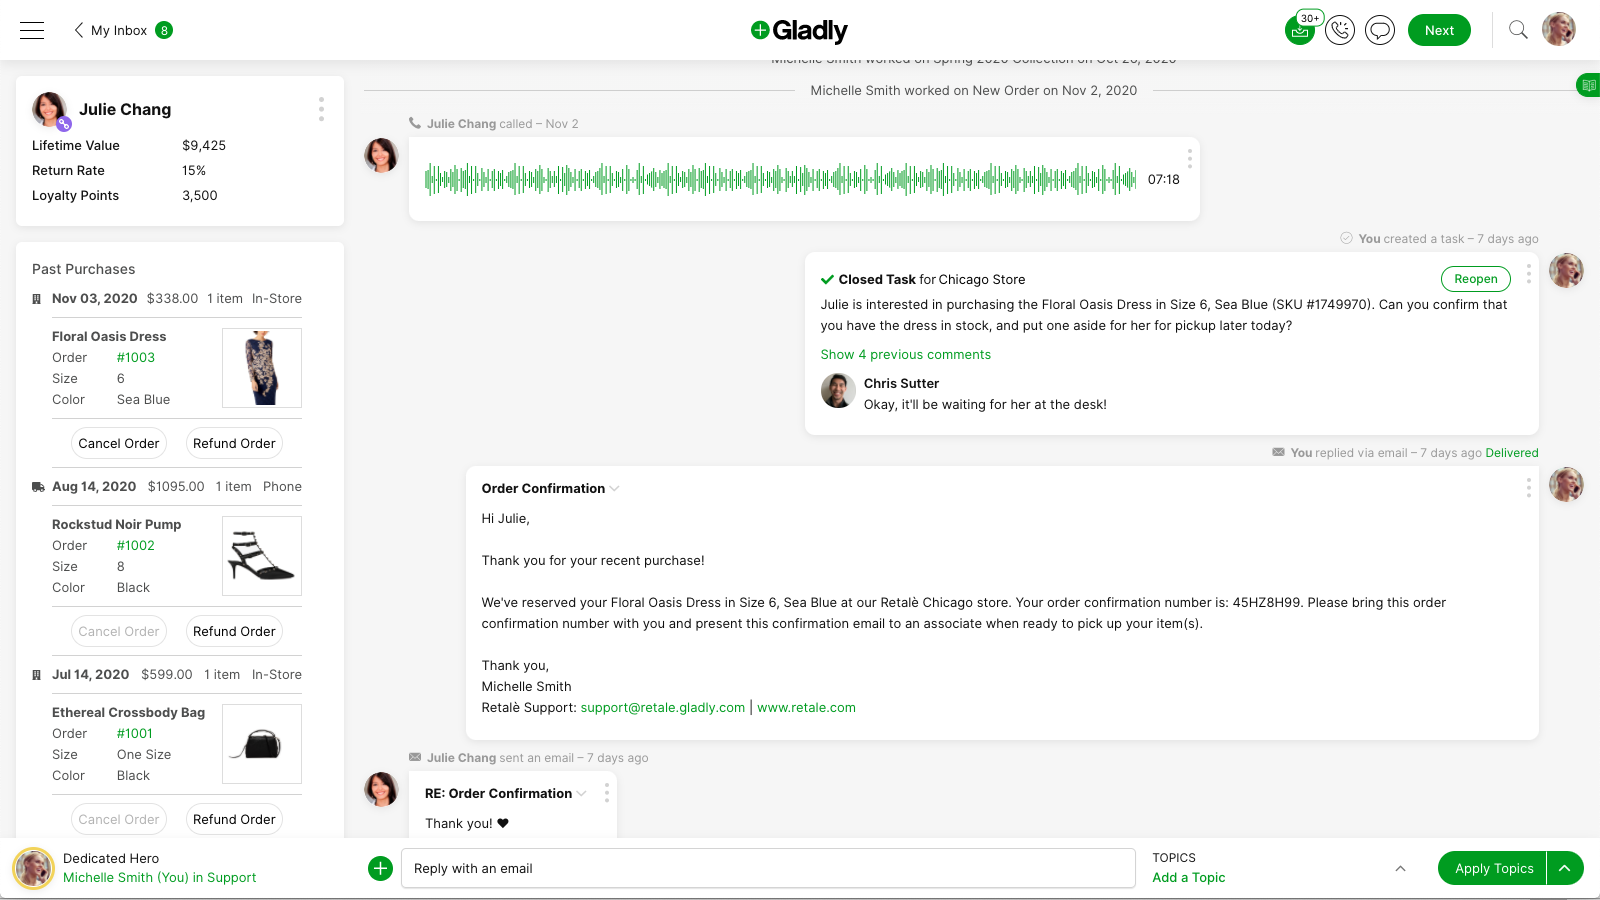 Full Customer View with a Single Conversation Timeline